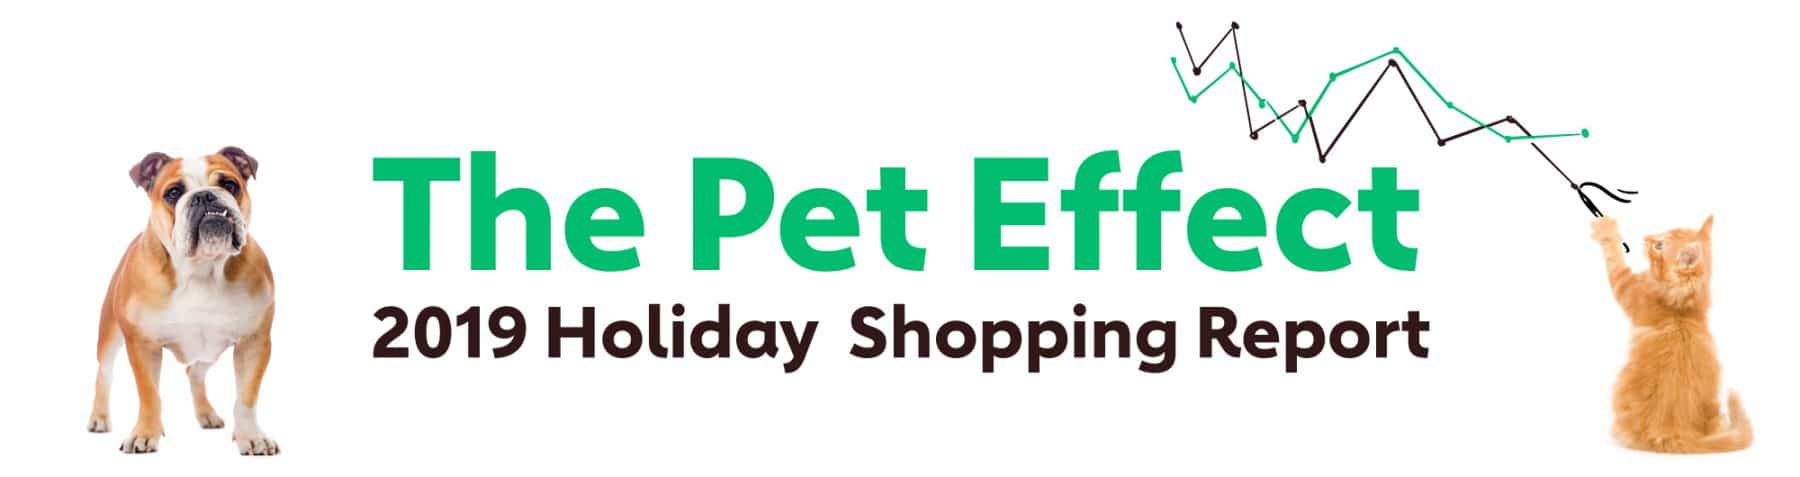 The Pet Effect: 2019 Holiday Shopping Report